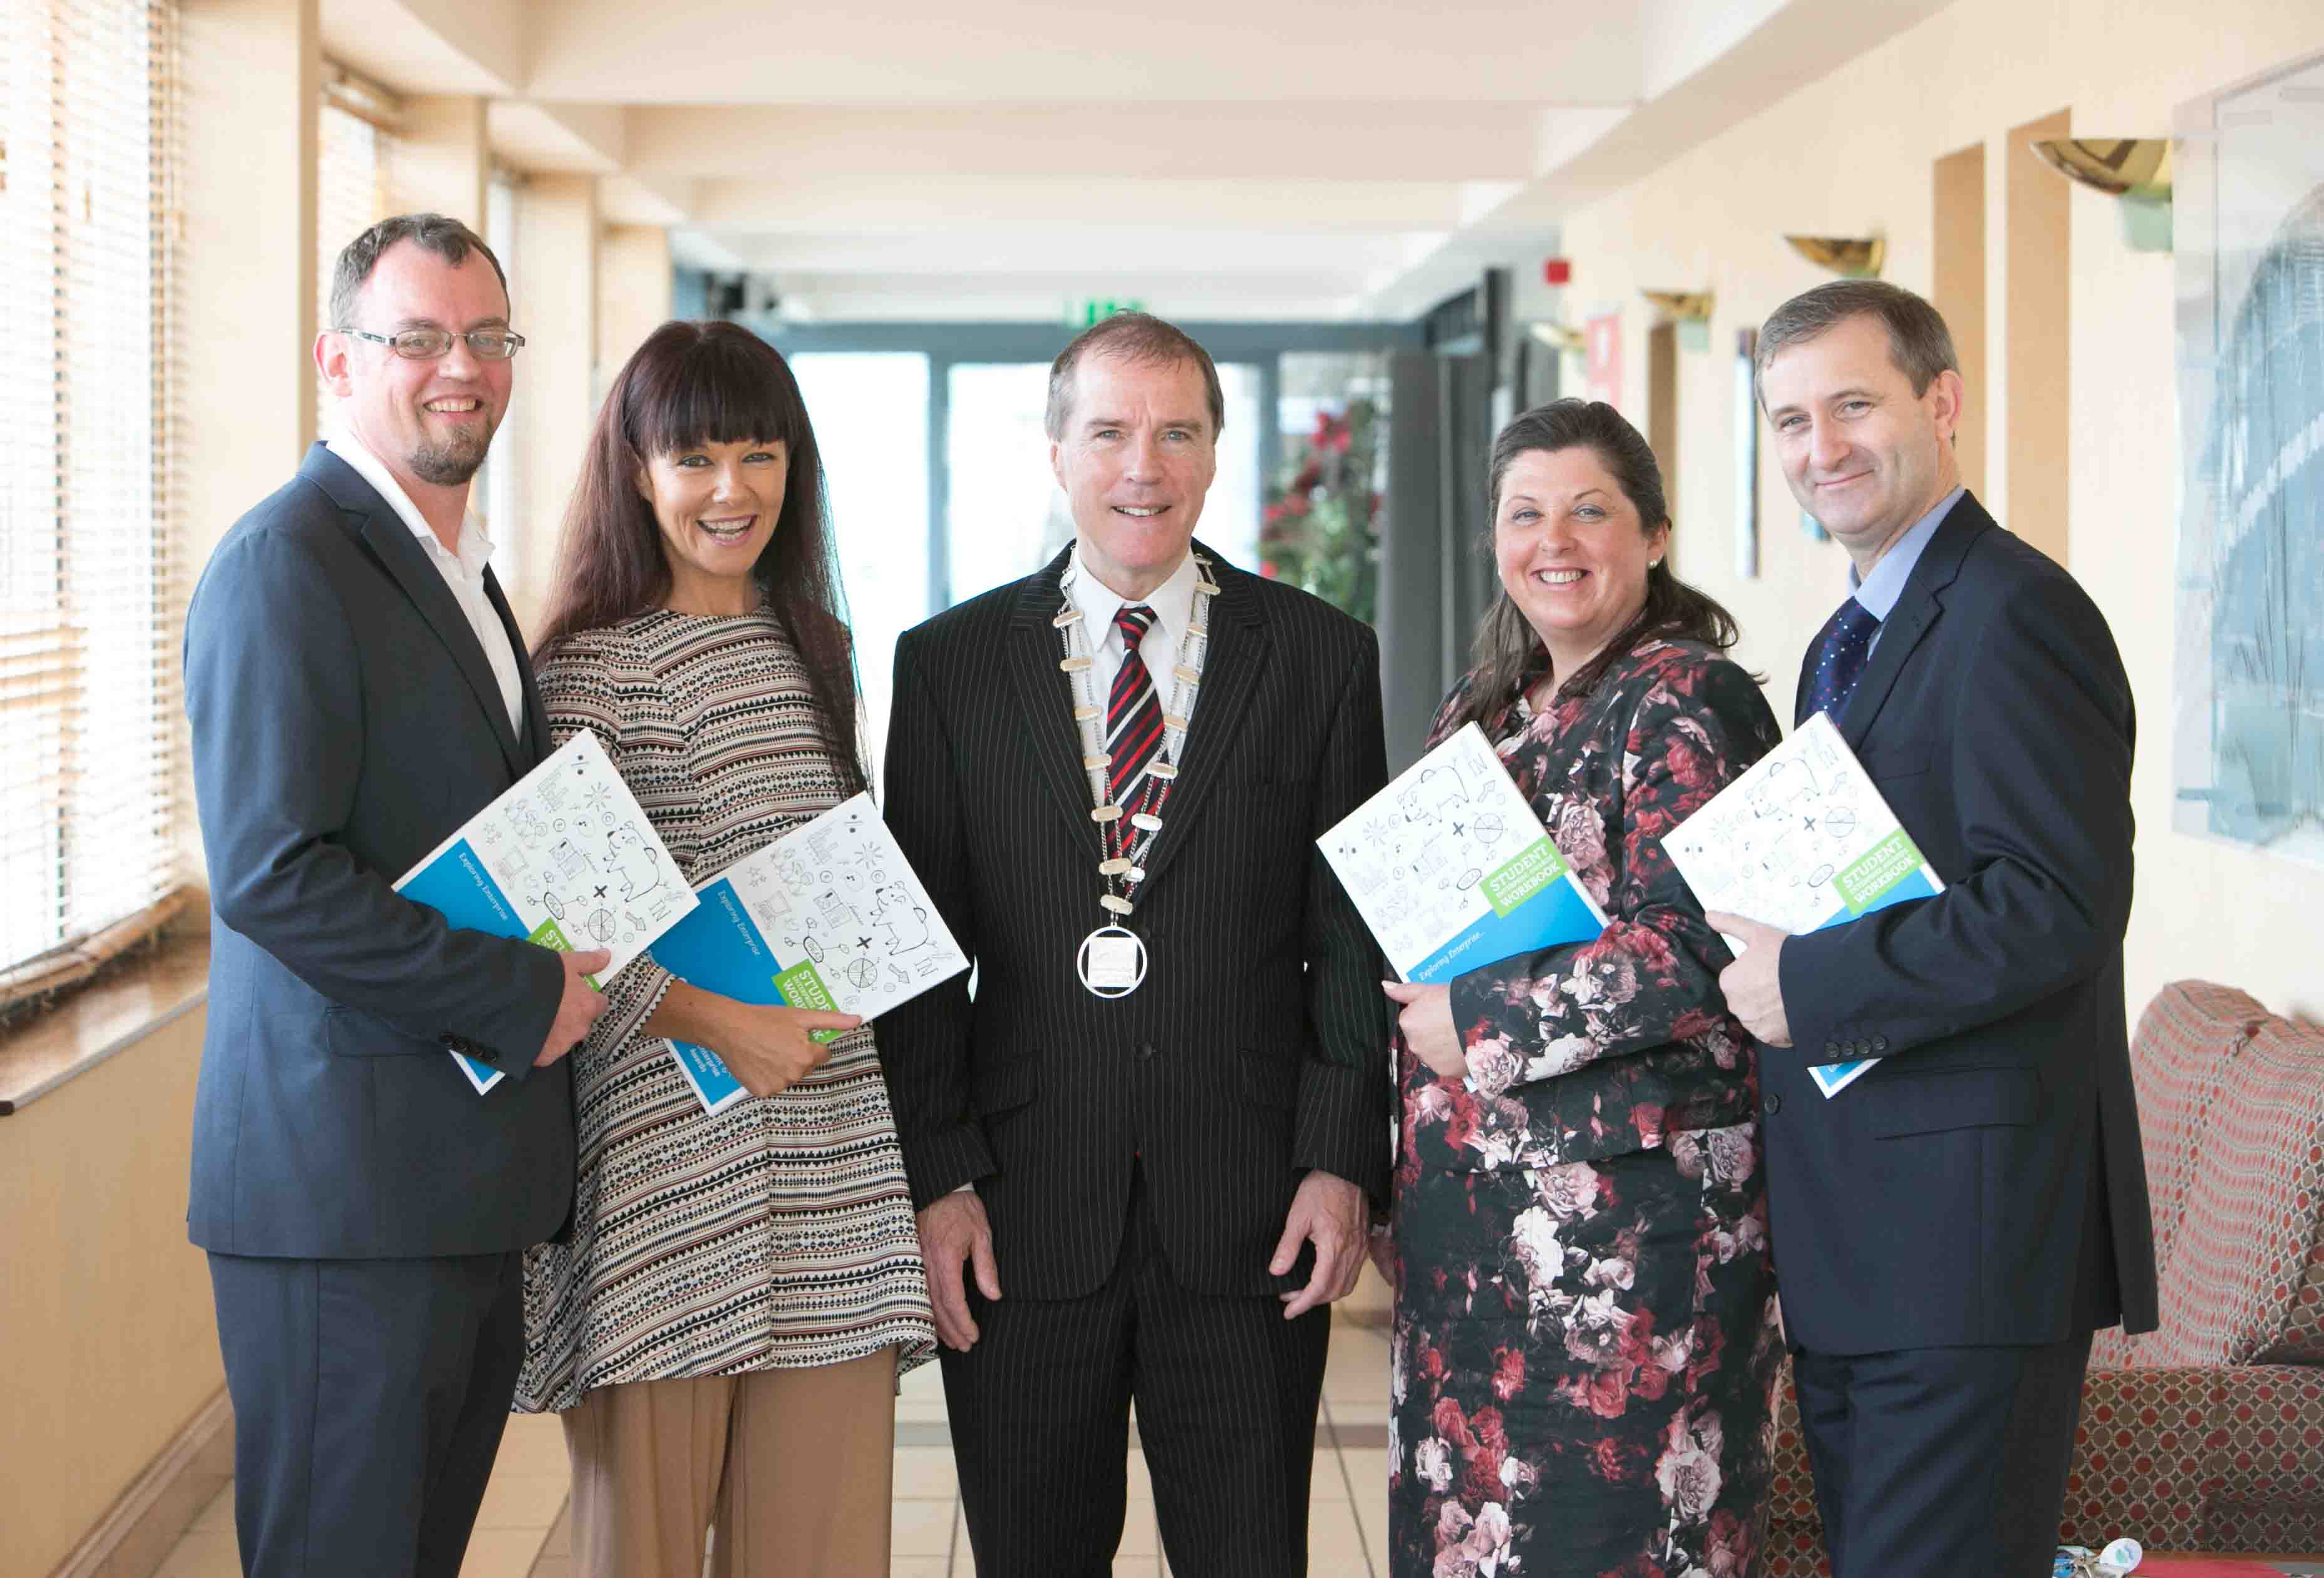 Limerick Students Gather For Launch Of Student Enterprise Annual Awards Programme